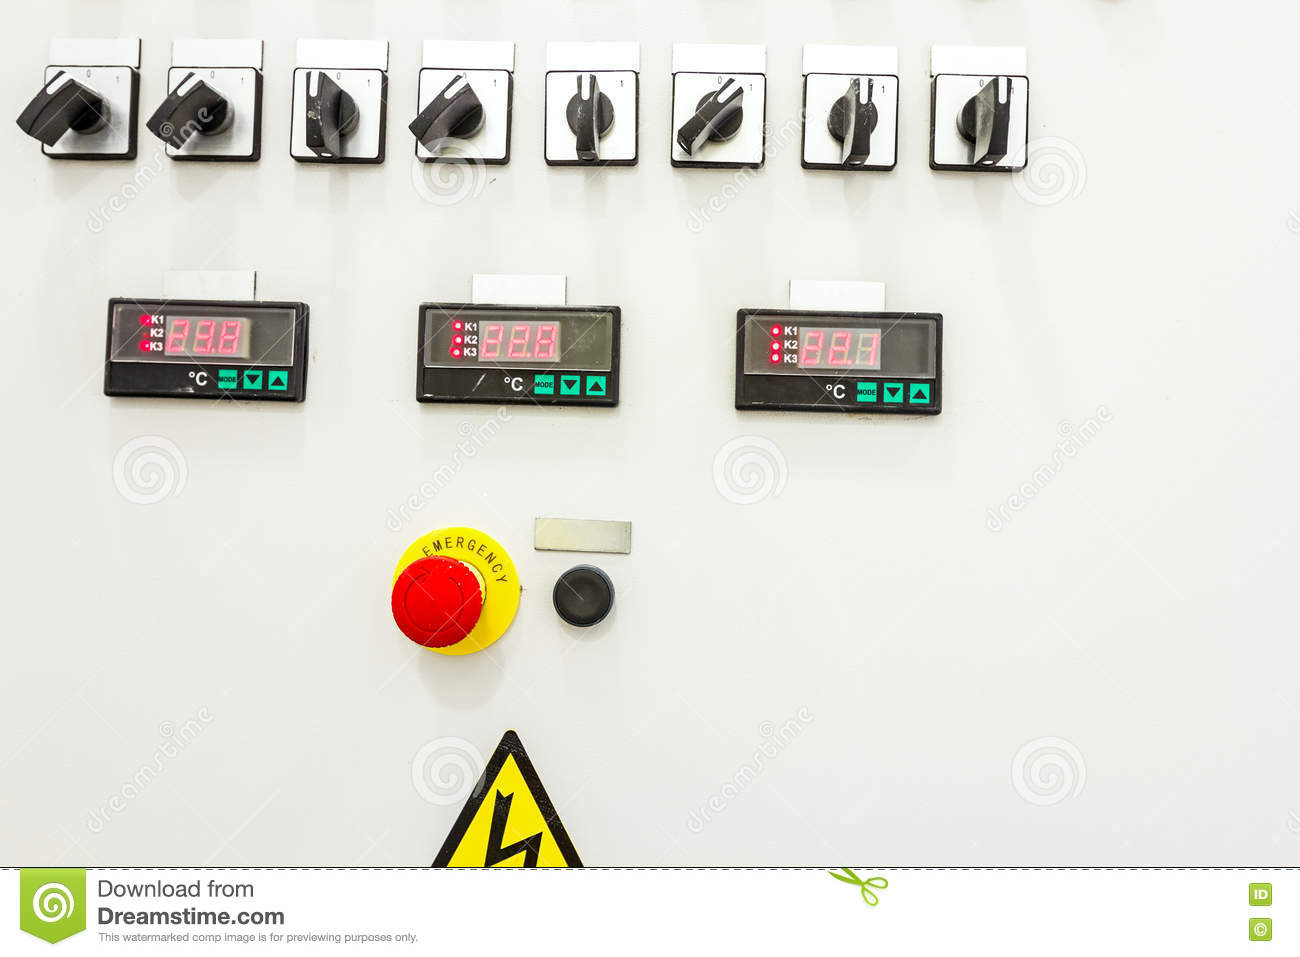 electrical control panel containing has a digital temperature gauge with  warning sticker and an emergency shutdown (panic) button